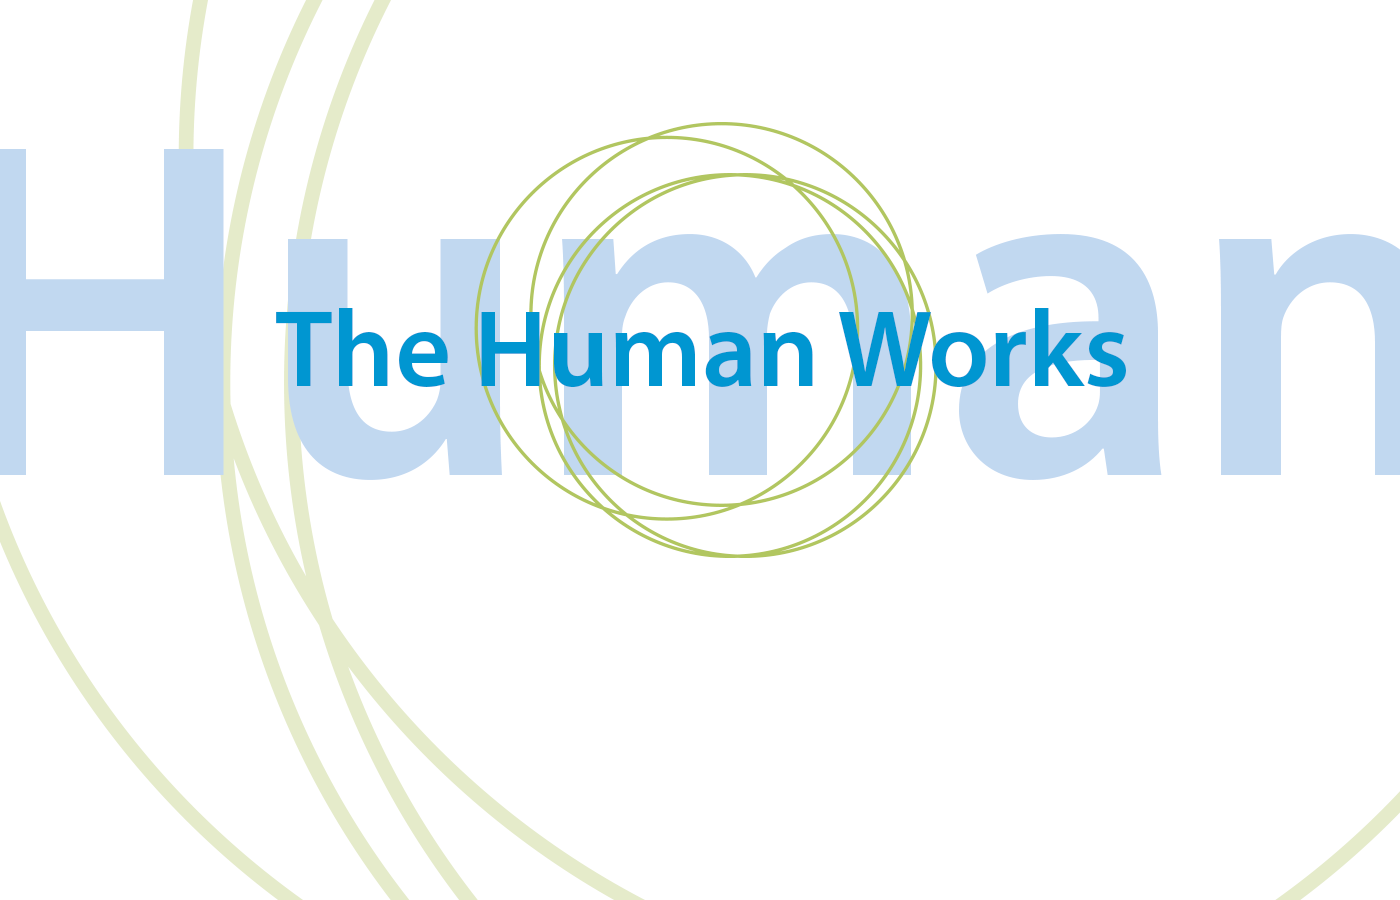 The Human Works